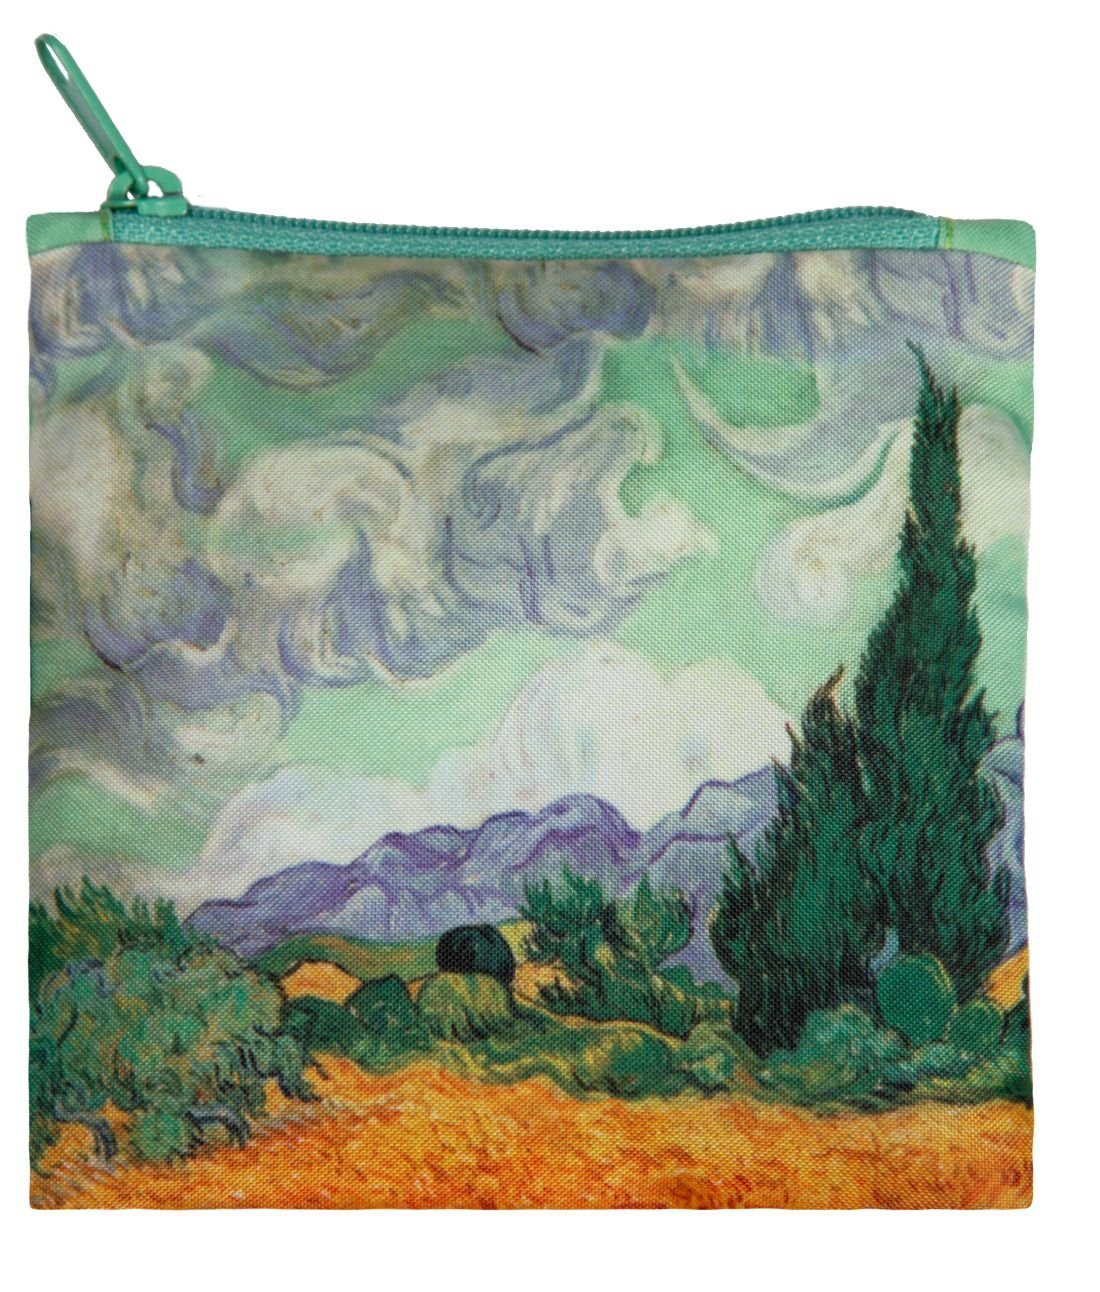 Museum VAN GOGH A Wheat Field with Cypresses Bag Shopper Tasche LOQI pblT6k7s